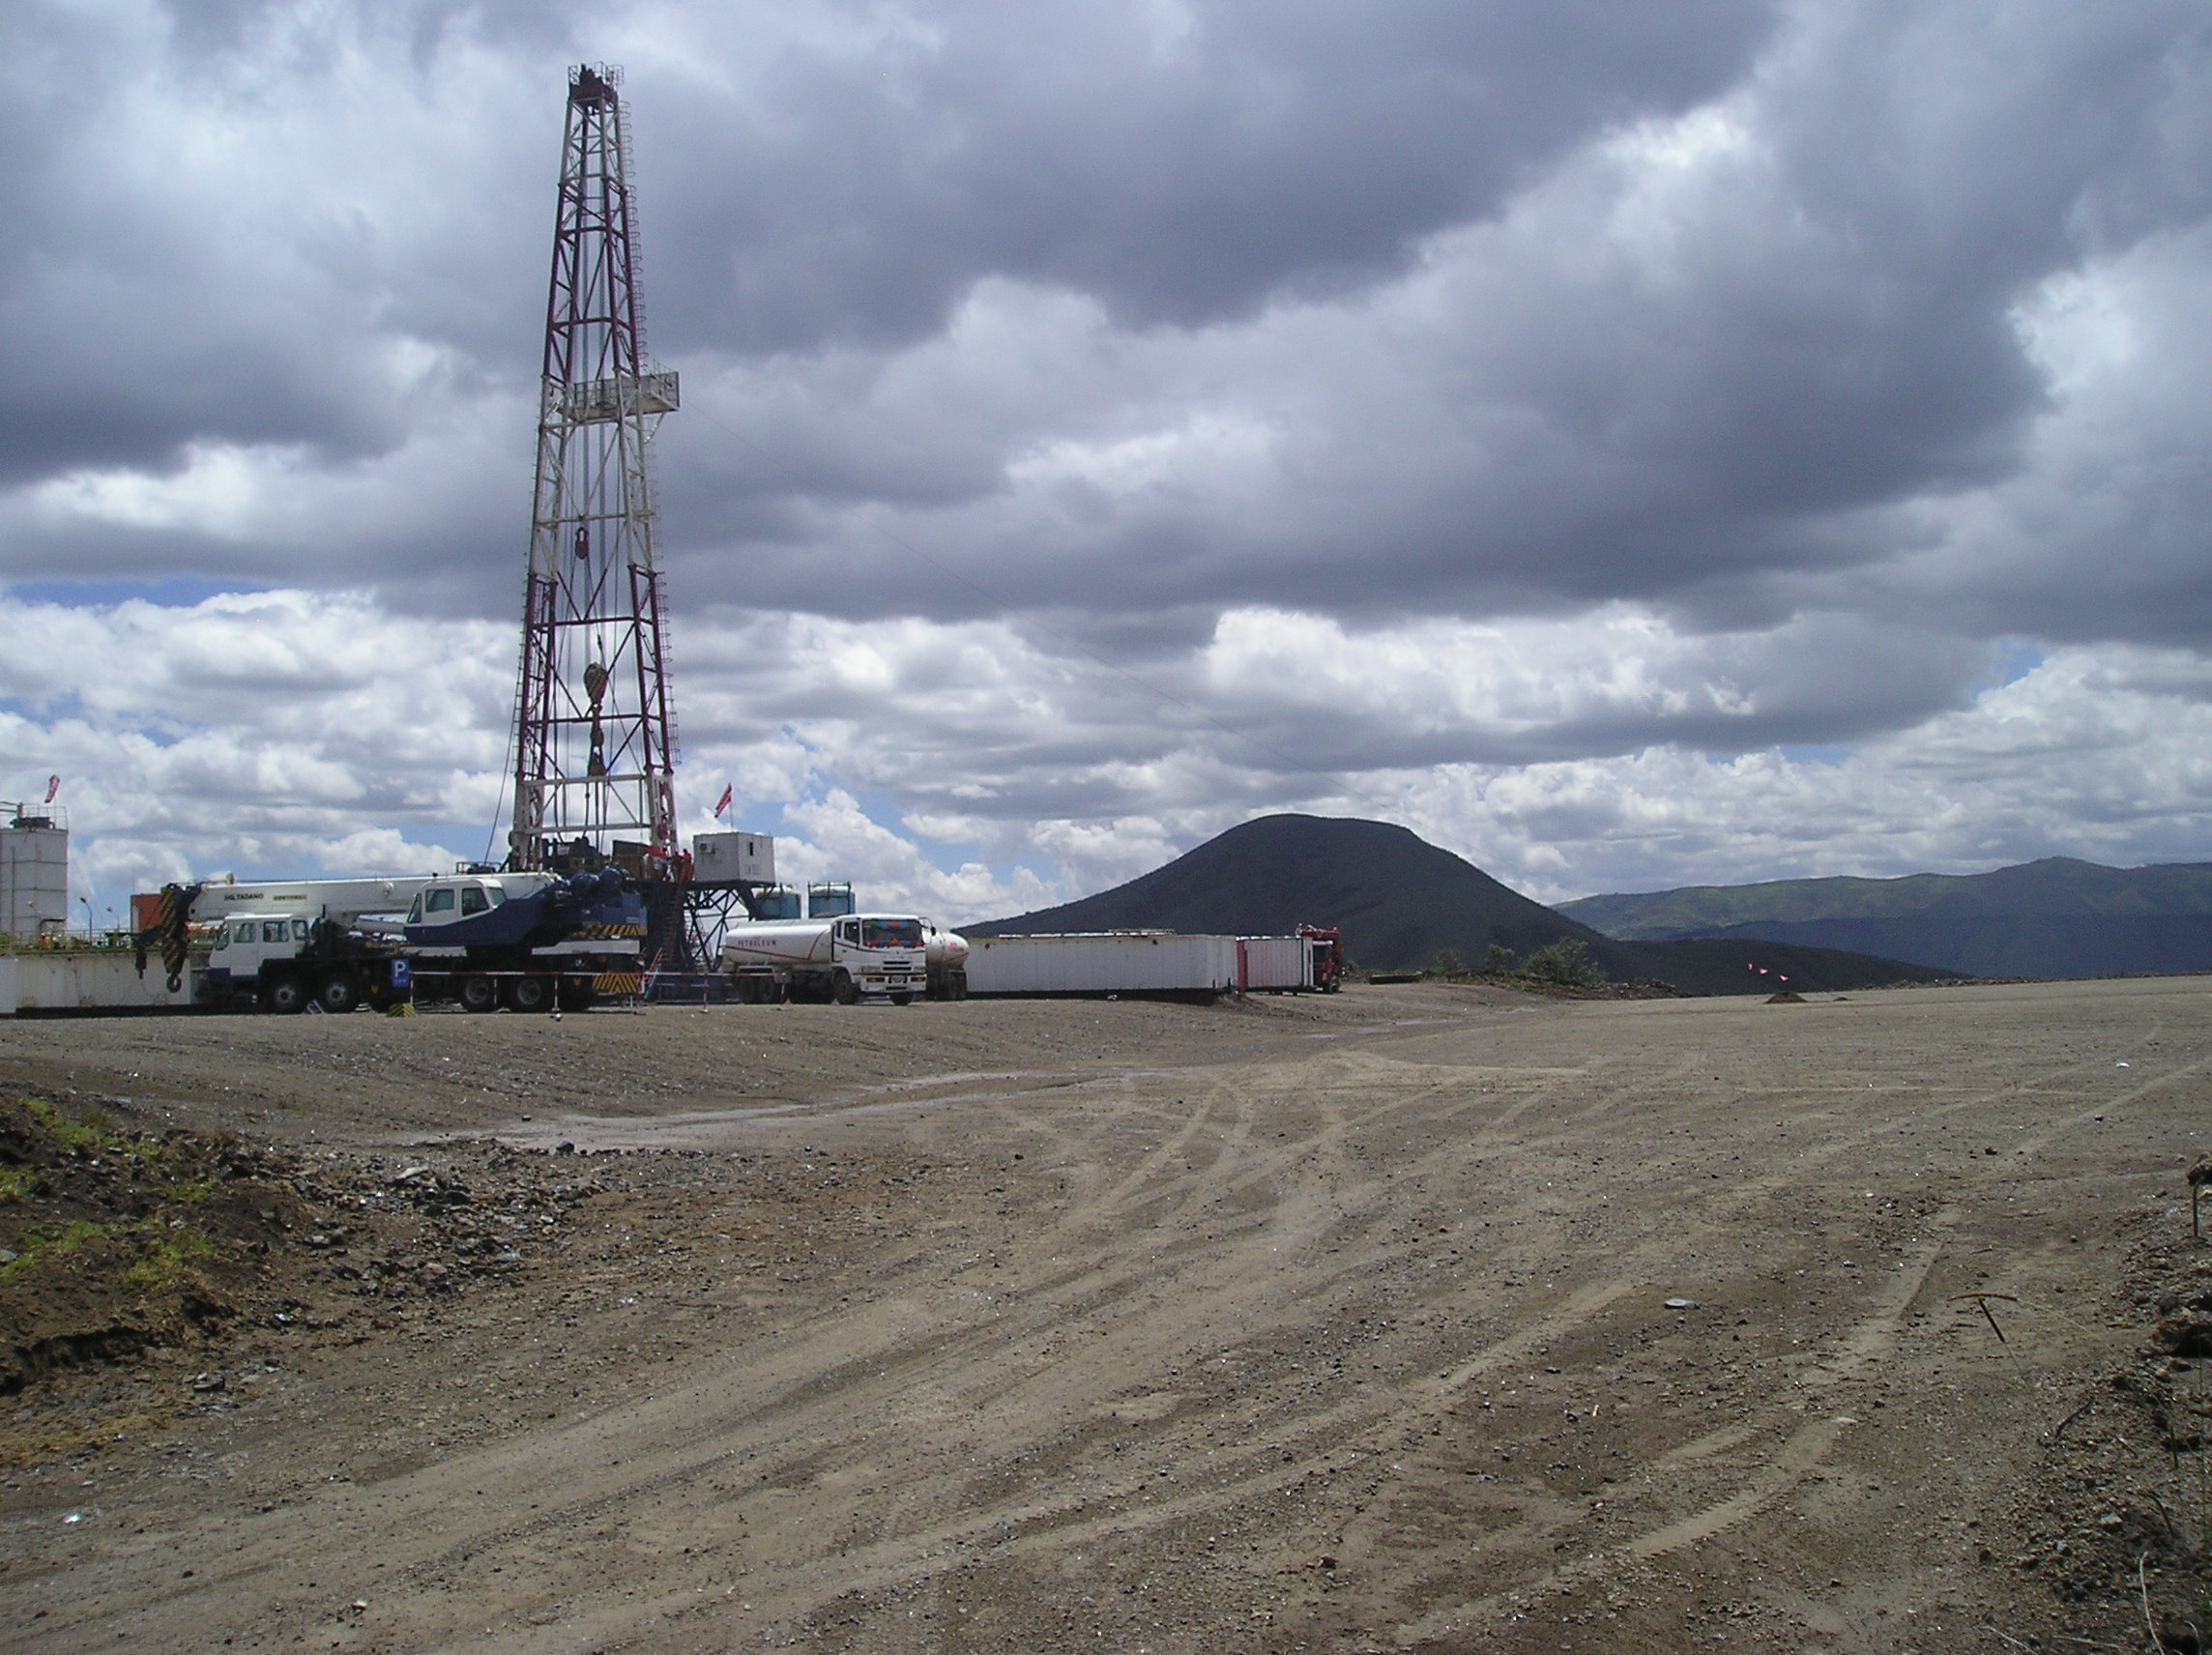 Drilling at Olkaria